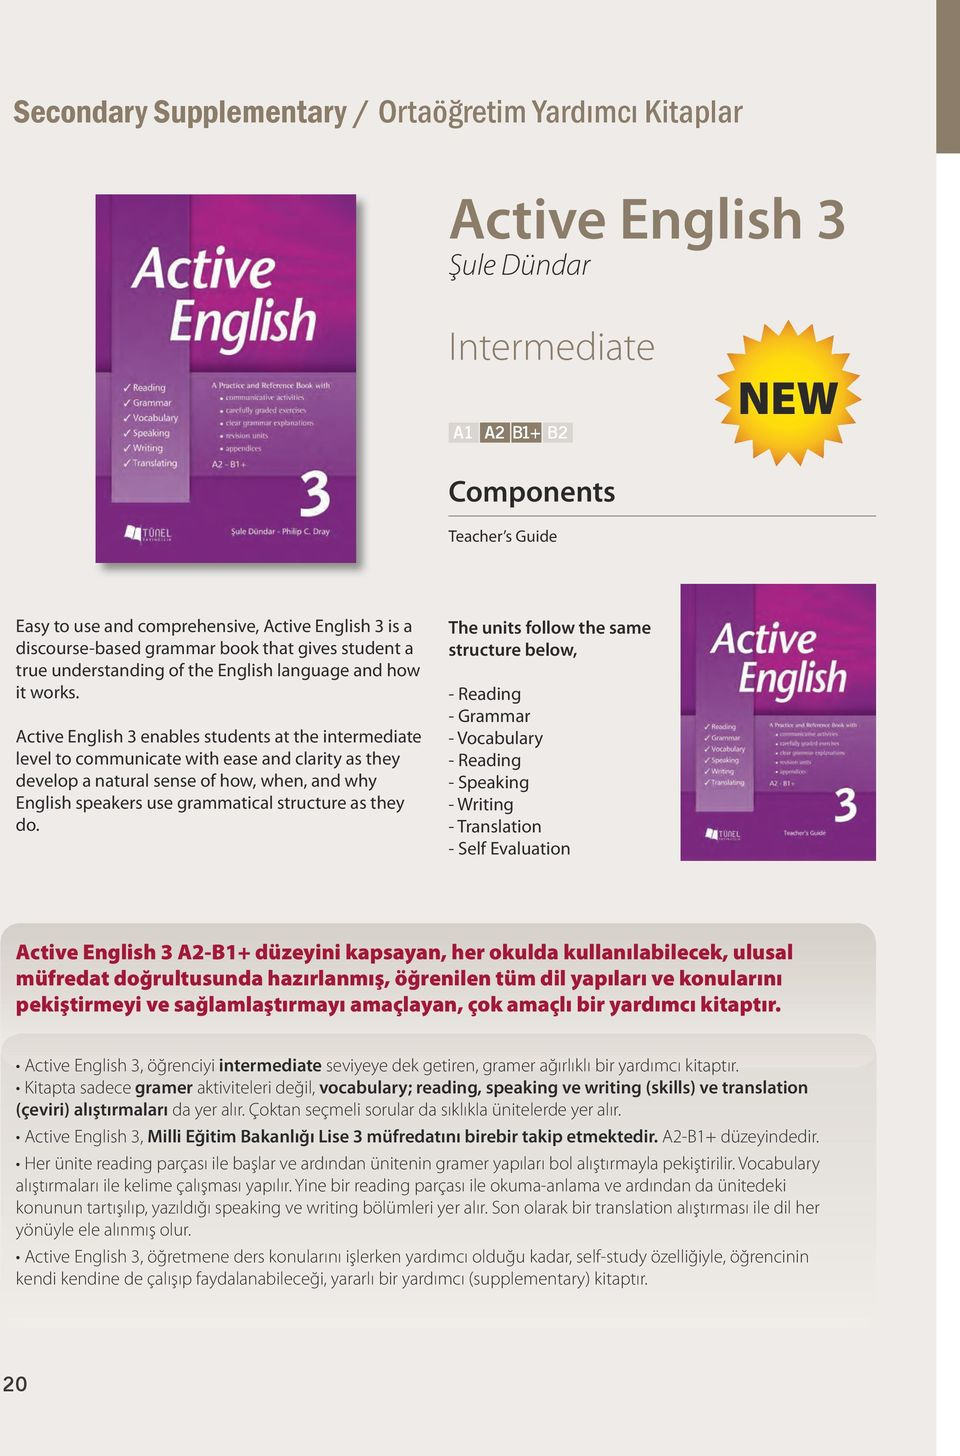 Active English 3 enables students at the intermediate level to communicate with ease and clarity as they develop a natural sense of how, when, and why English speakers use grammatical structure as